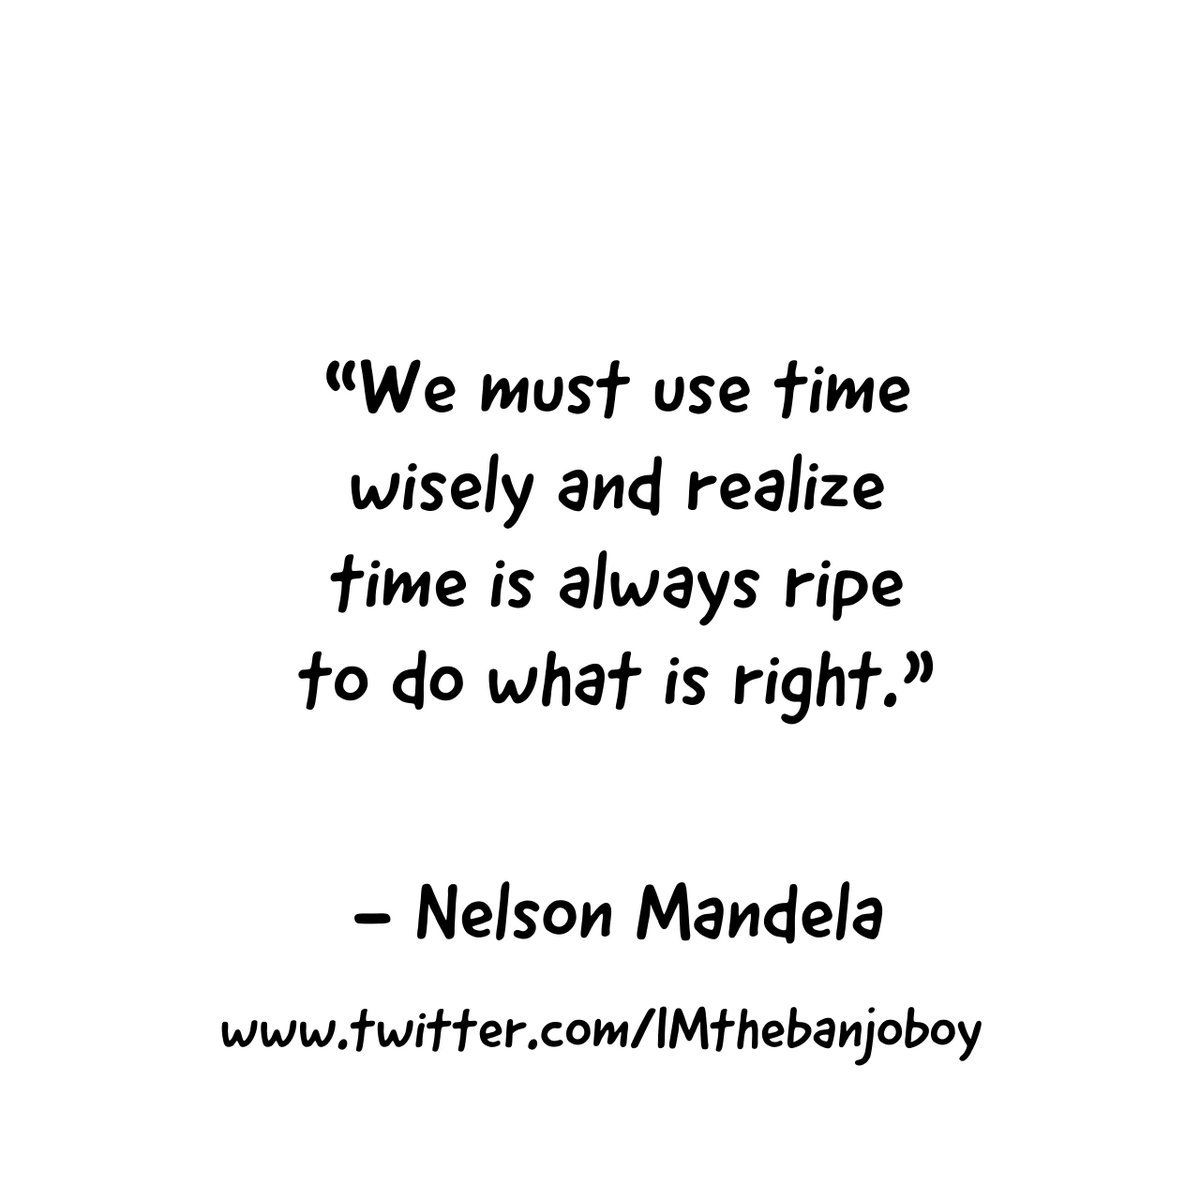 We must use time wisely #NelsonMandela https://www.youtube.com/watch?v=GCHqqR6yCSc … #Learning  #Time  #MoreLearning  #Wisdom  #TimeManagement  #Action  #Actions  #Activity  #Rightness  #Morality  #Advocacy  #Productivity  #Progress  #SocialChange  #Effort  #Now  #Leadership  #us  #Quotes  #MoreQuotes